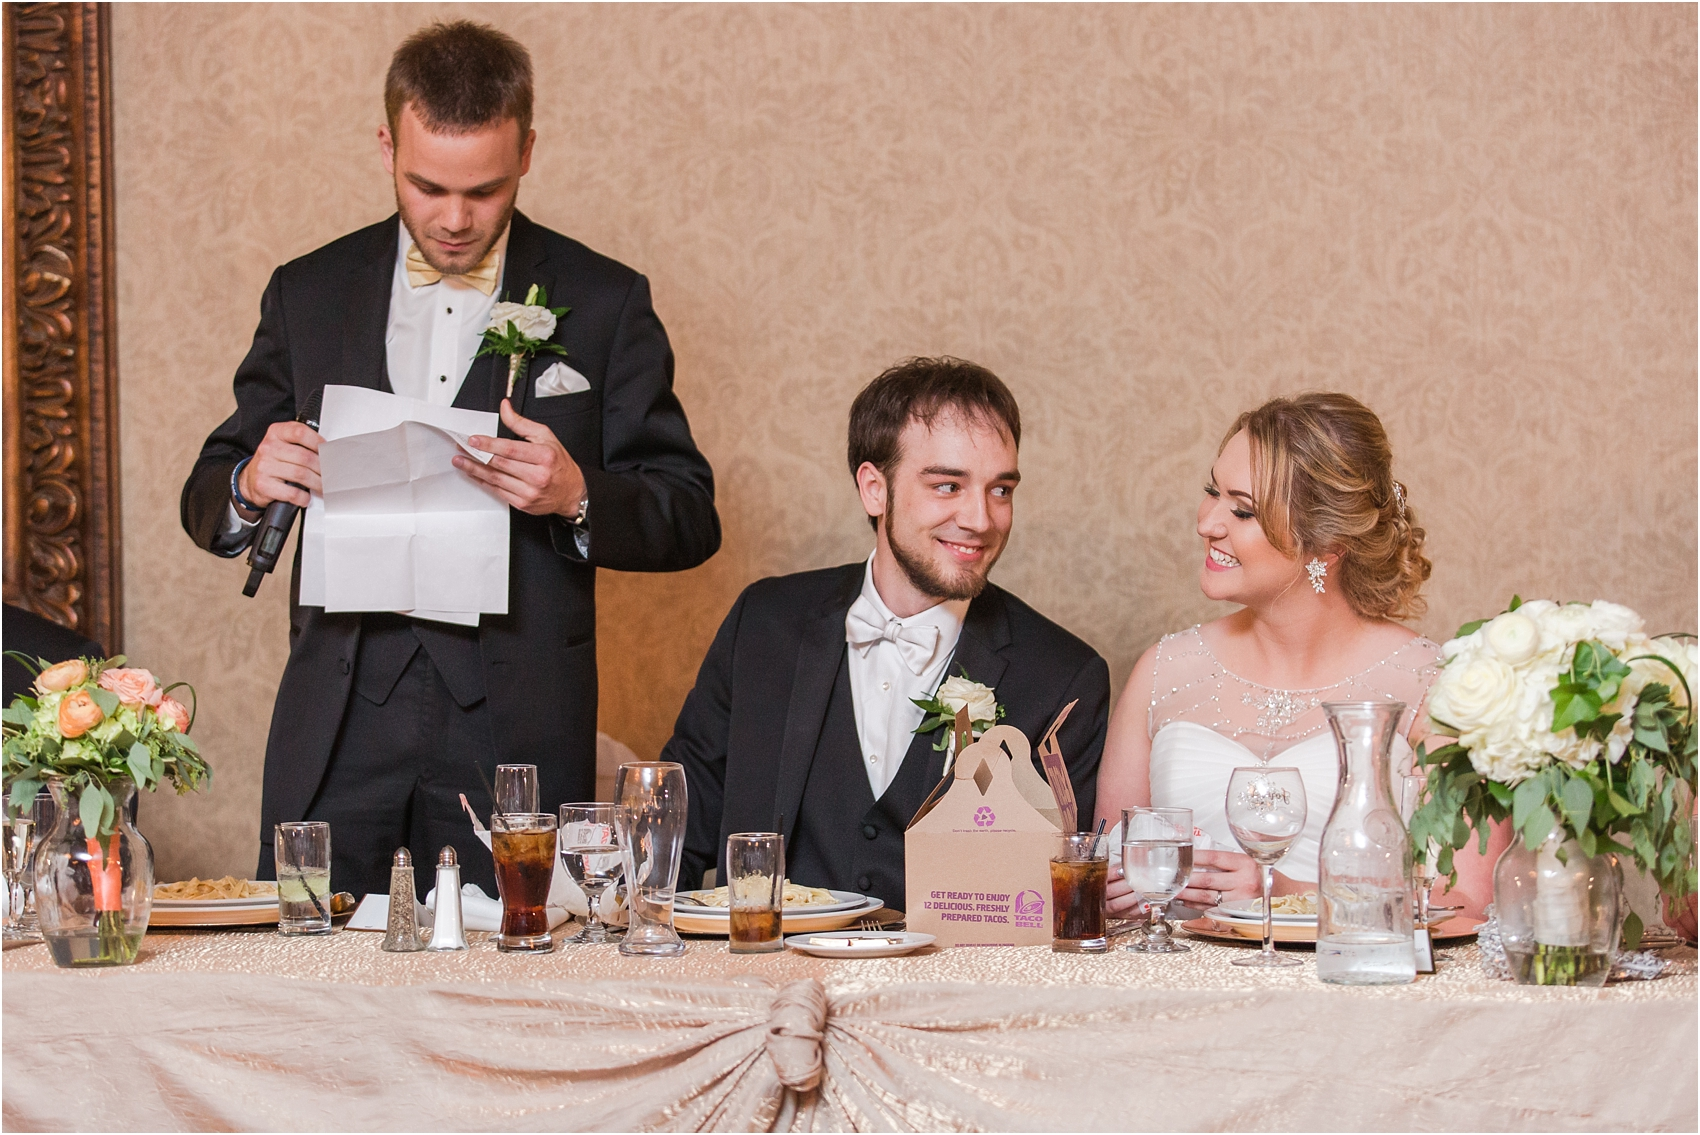 lord-of-the-rings-inspired-wedding-photos-at-crystal-gardens-in-howell-mi-by-courtney-carolyn-photography_0077.jpg